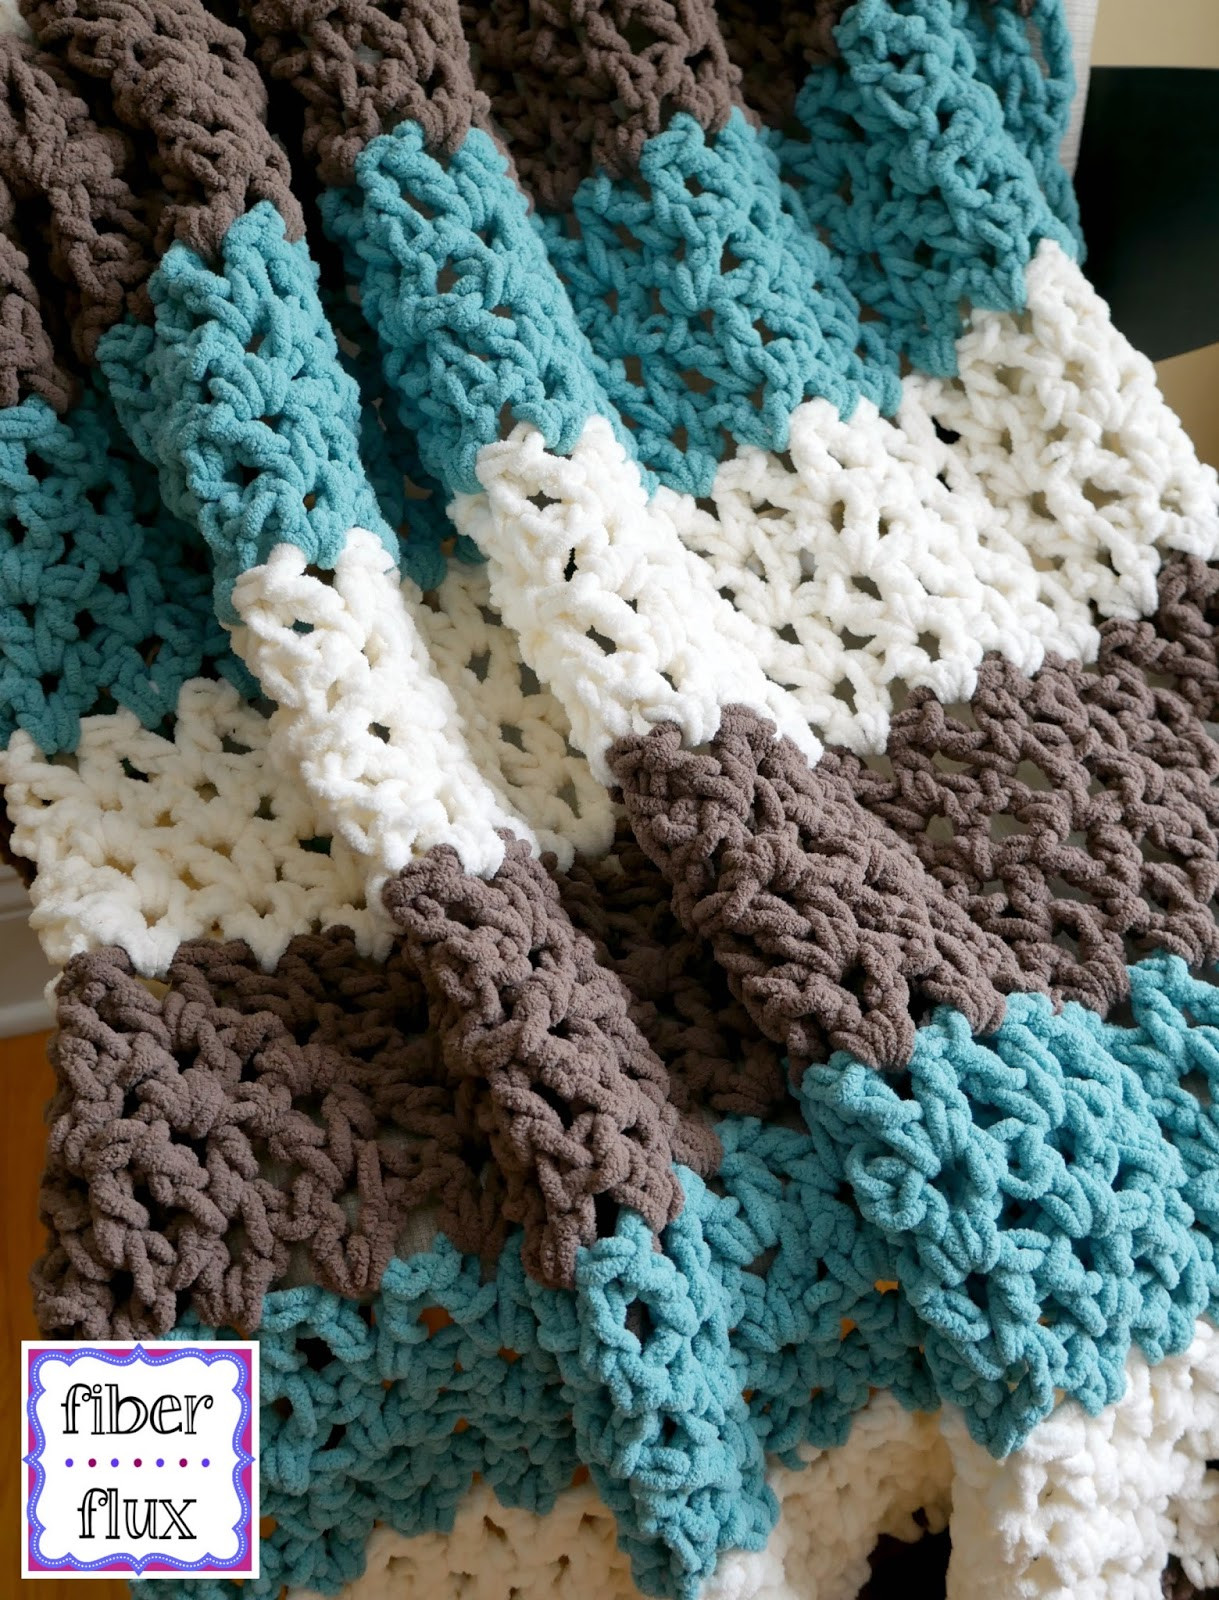 Crochet Throw Patterns Luxury Fiber Flux Free Crochet Pattern Family Room Throw Of Brilliant 40 Photos Crochet Throw Patterns